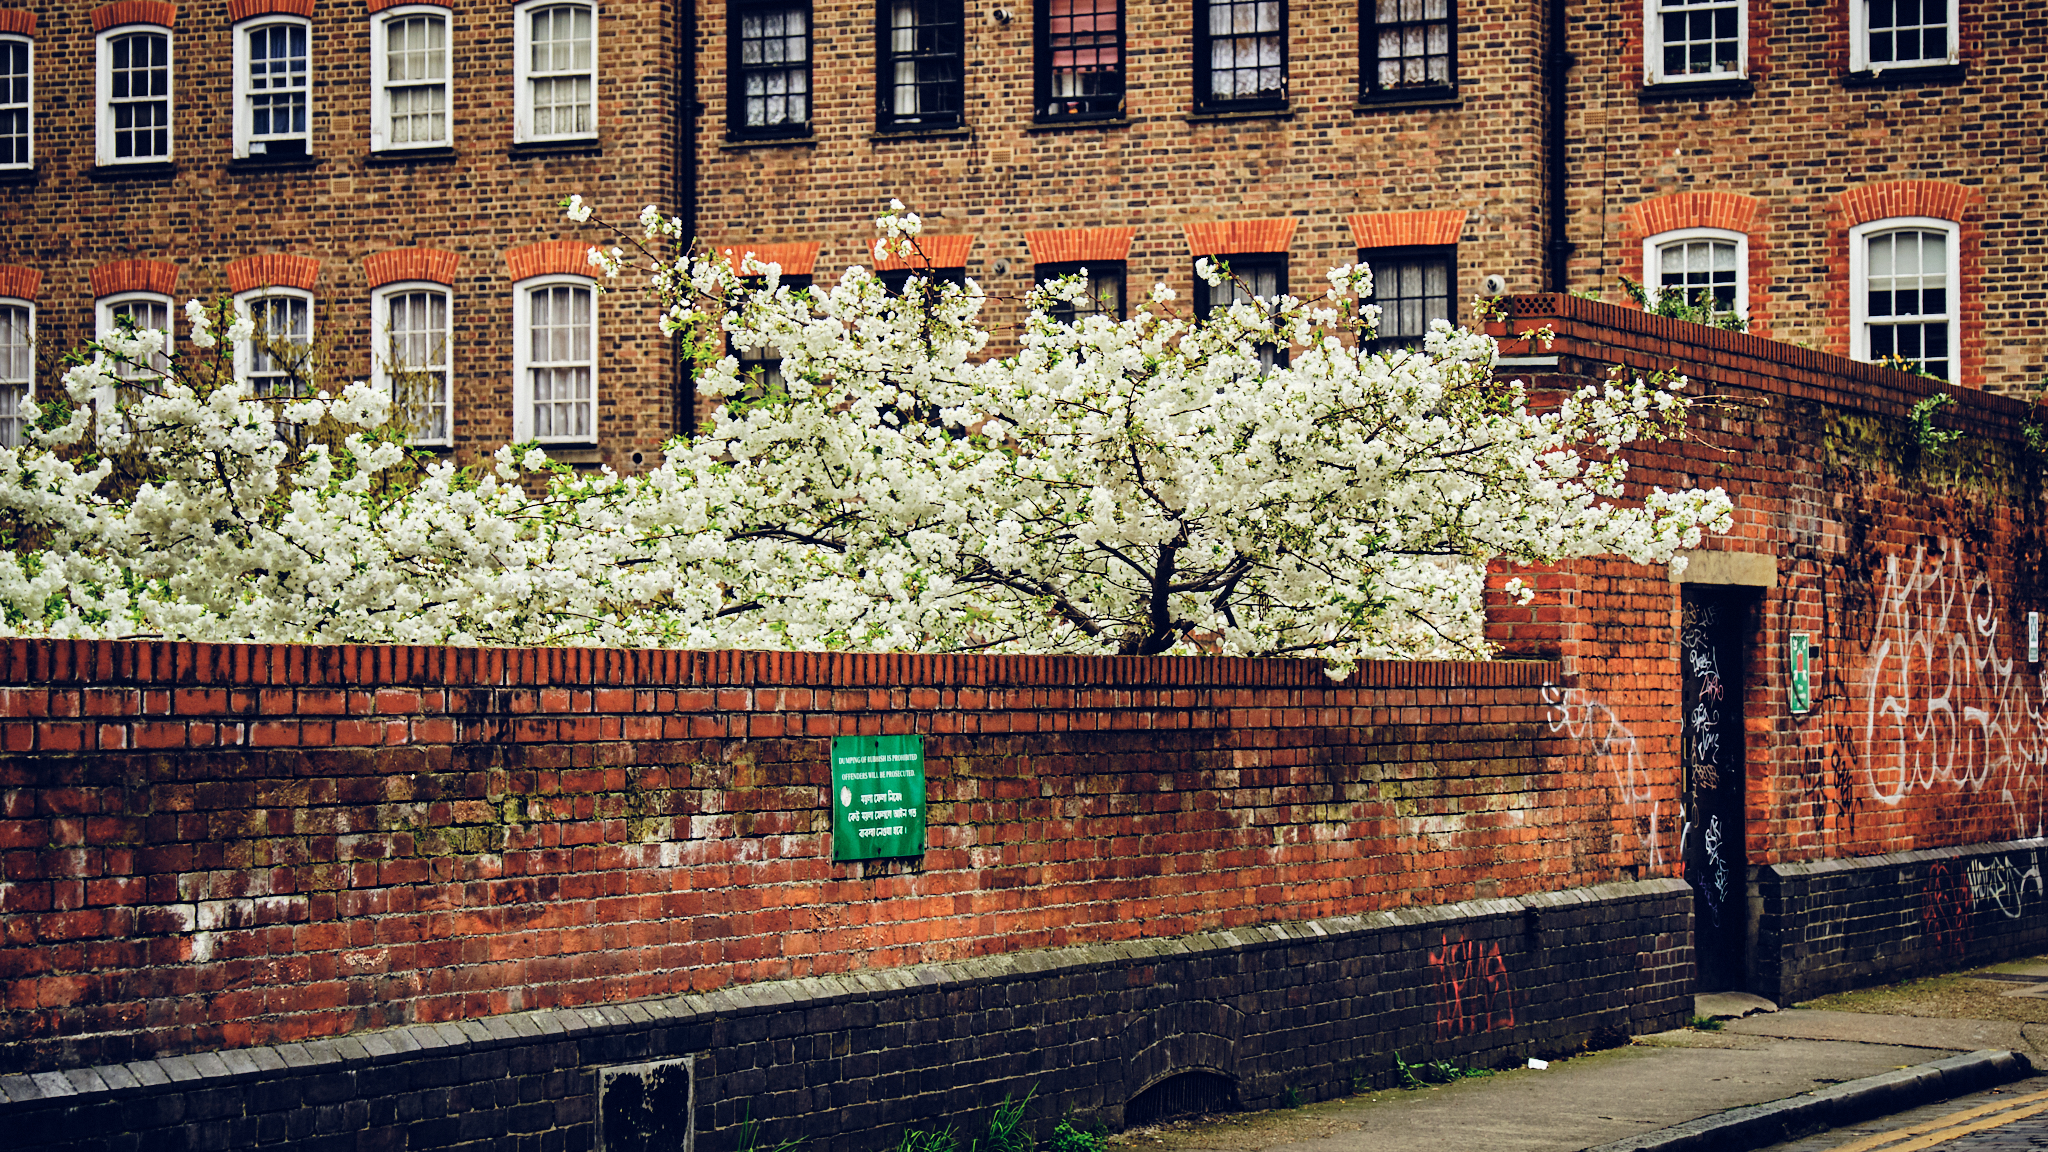 Cherry Blossom in East London Fuji X-T3 16-55mm